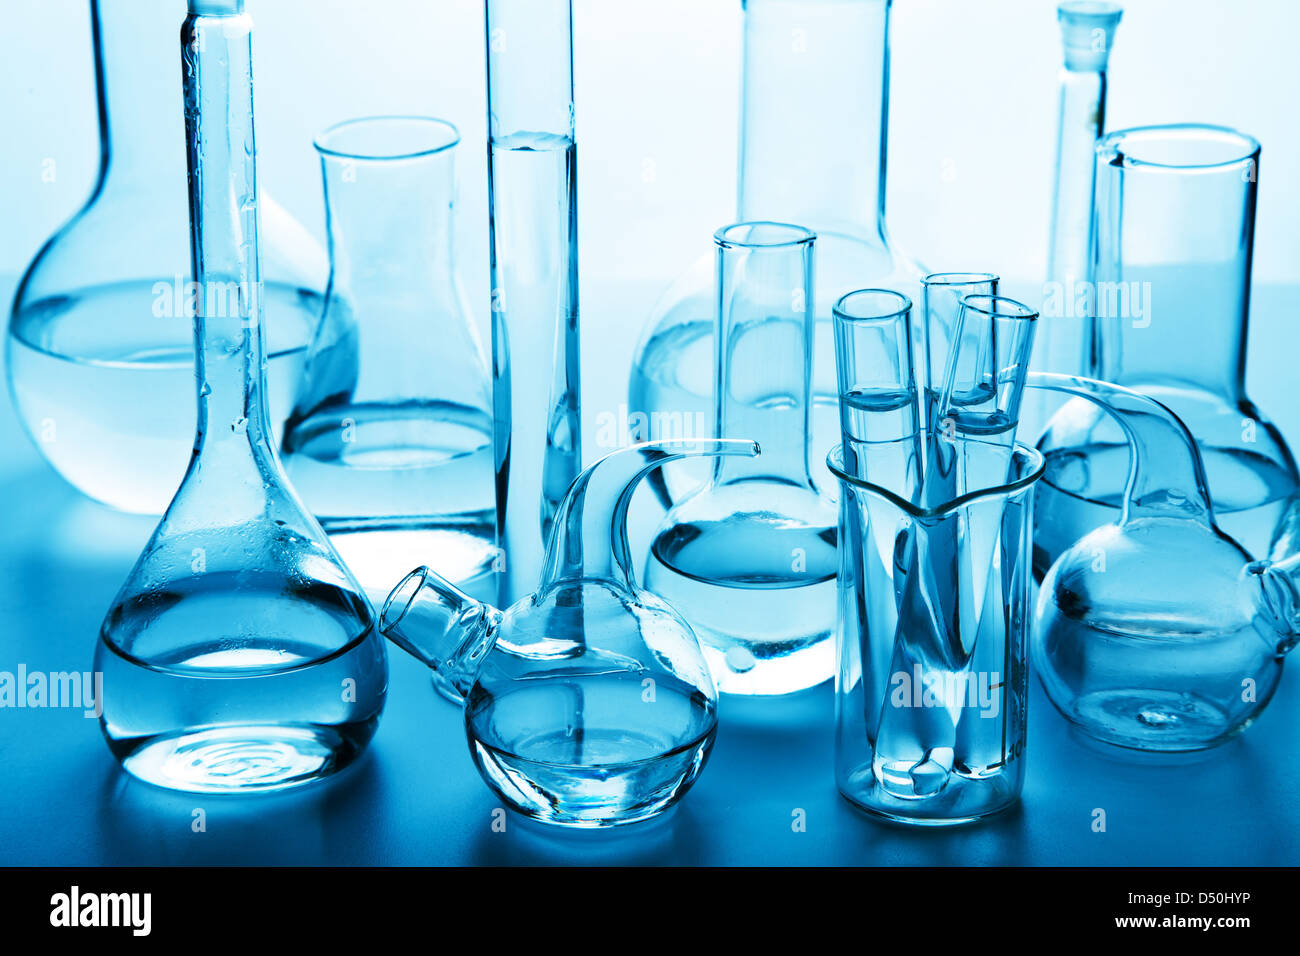 chemical laboratory glassware - Stock Image